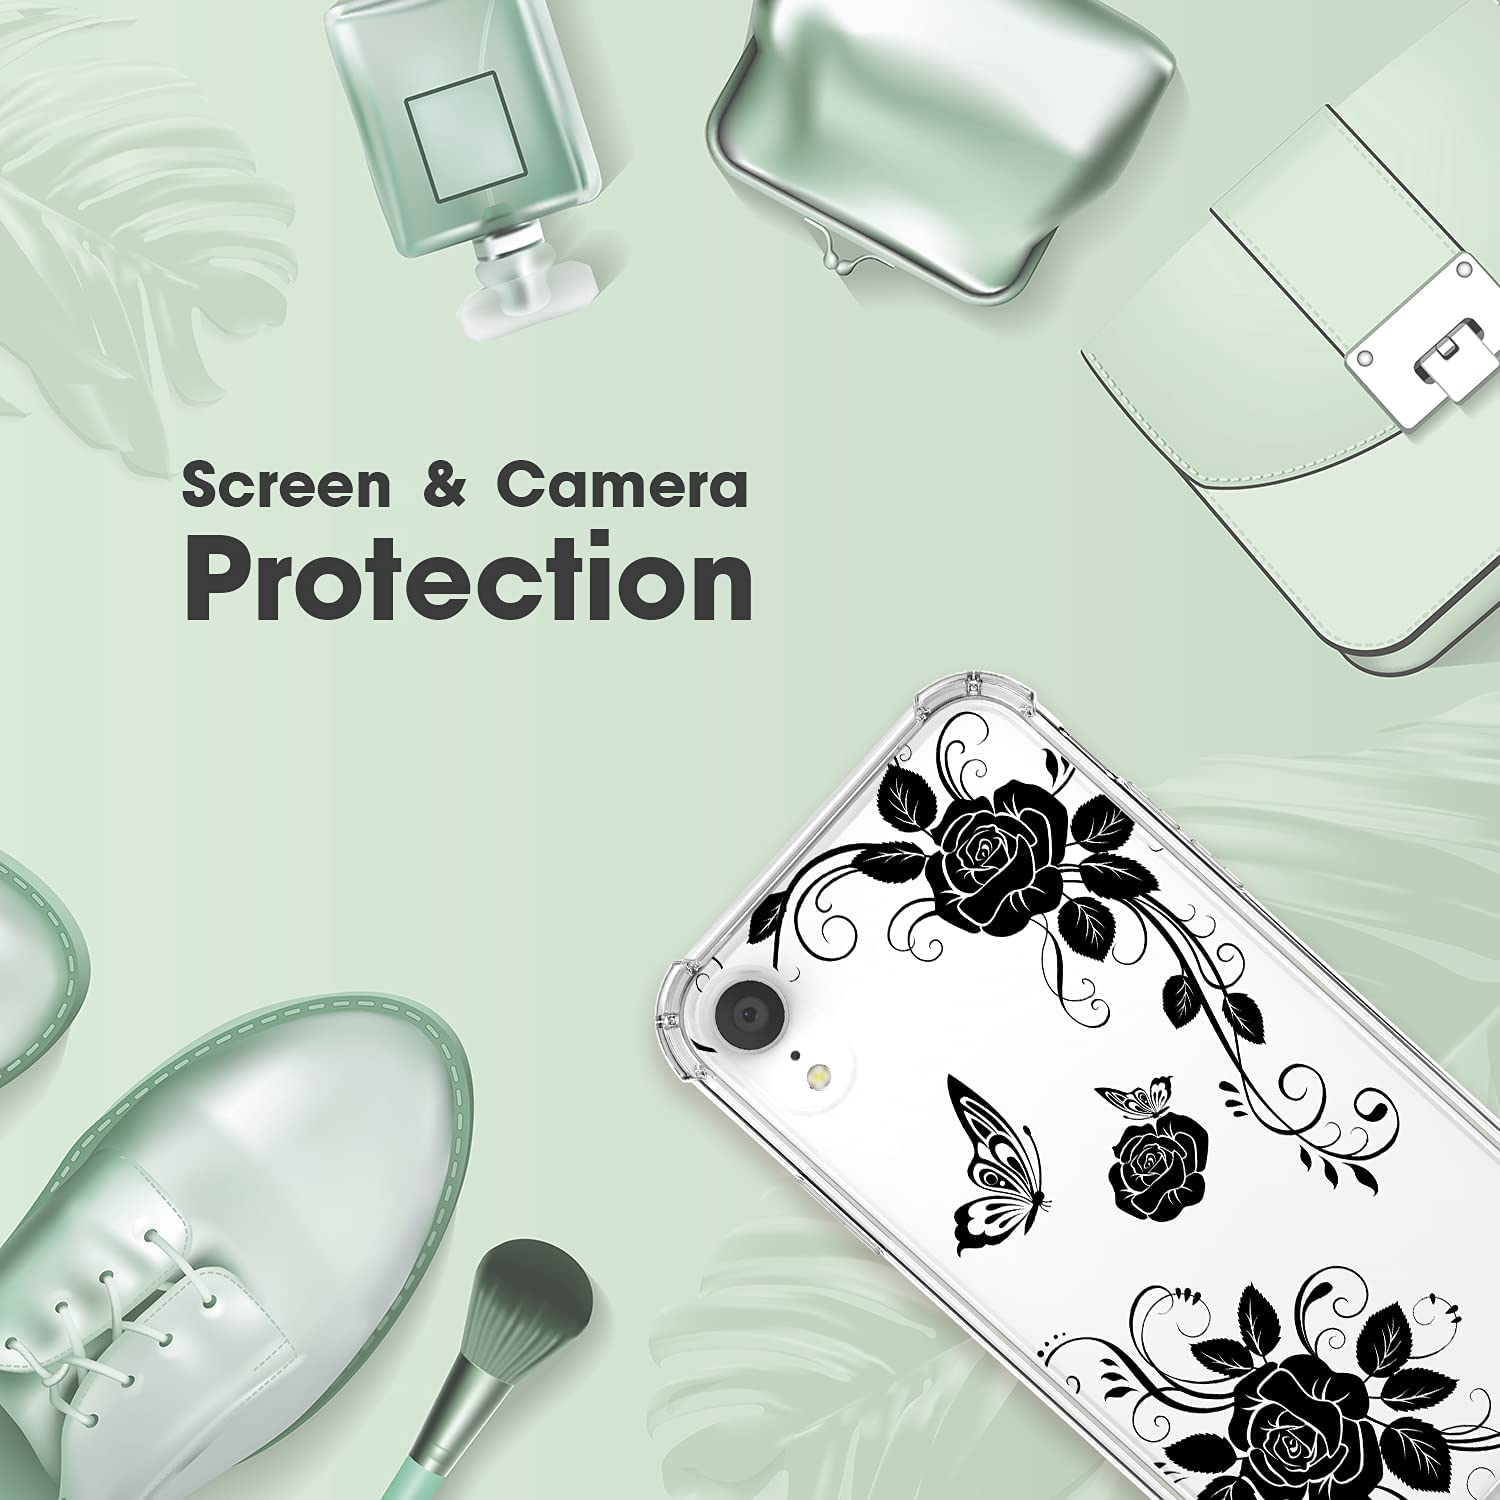 Cutebe Case for iPhone XR, Shockproof Series Hard PC+ TPU Bumper Protective Cover for Apple iPhone XR 6.1 Inch 2018 Release Black